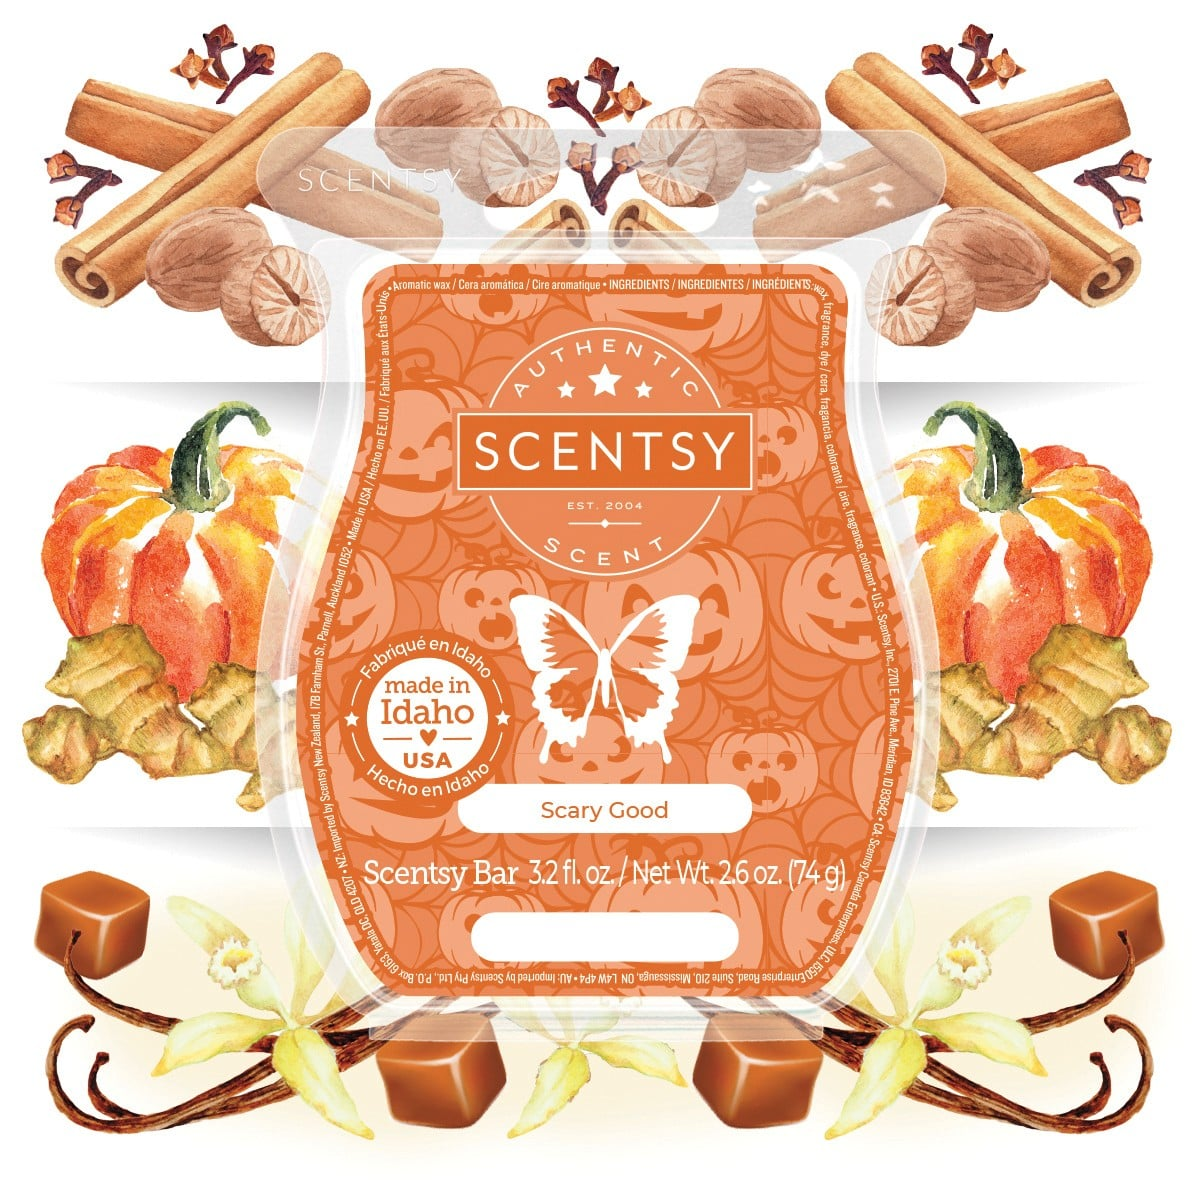 Scary Good Time Scentsy Fragrance 1 1